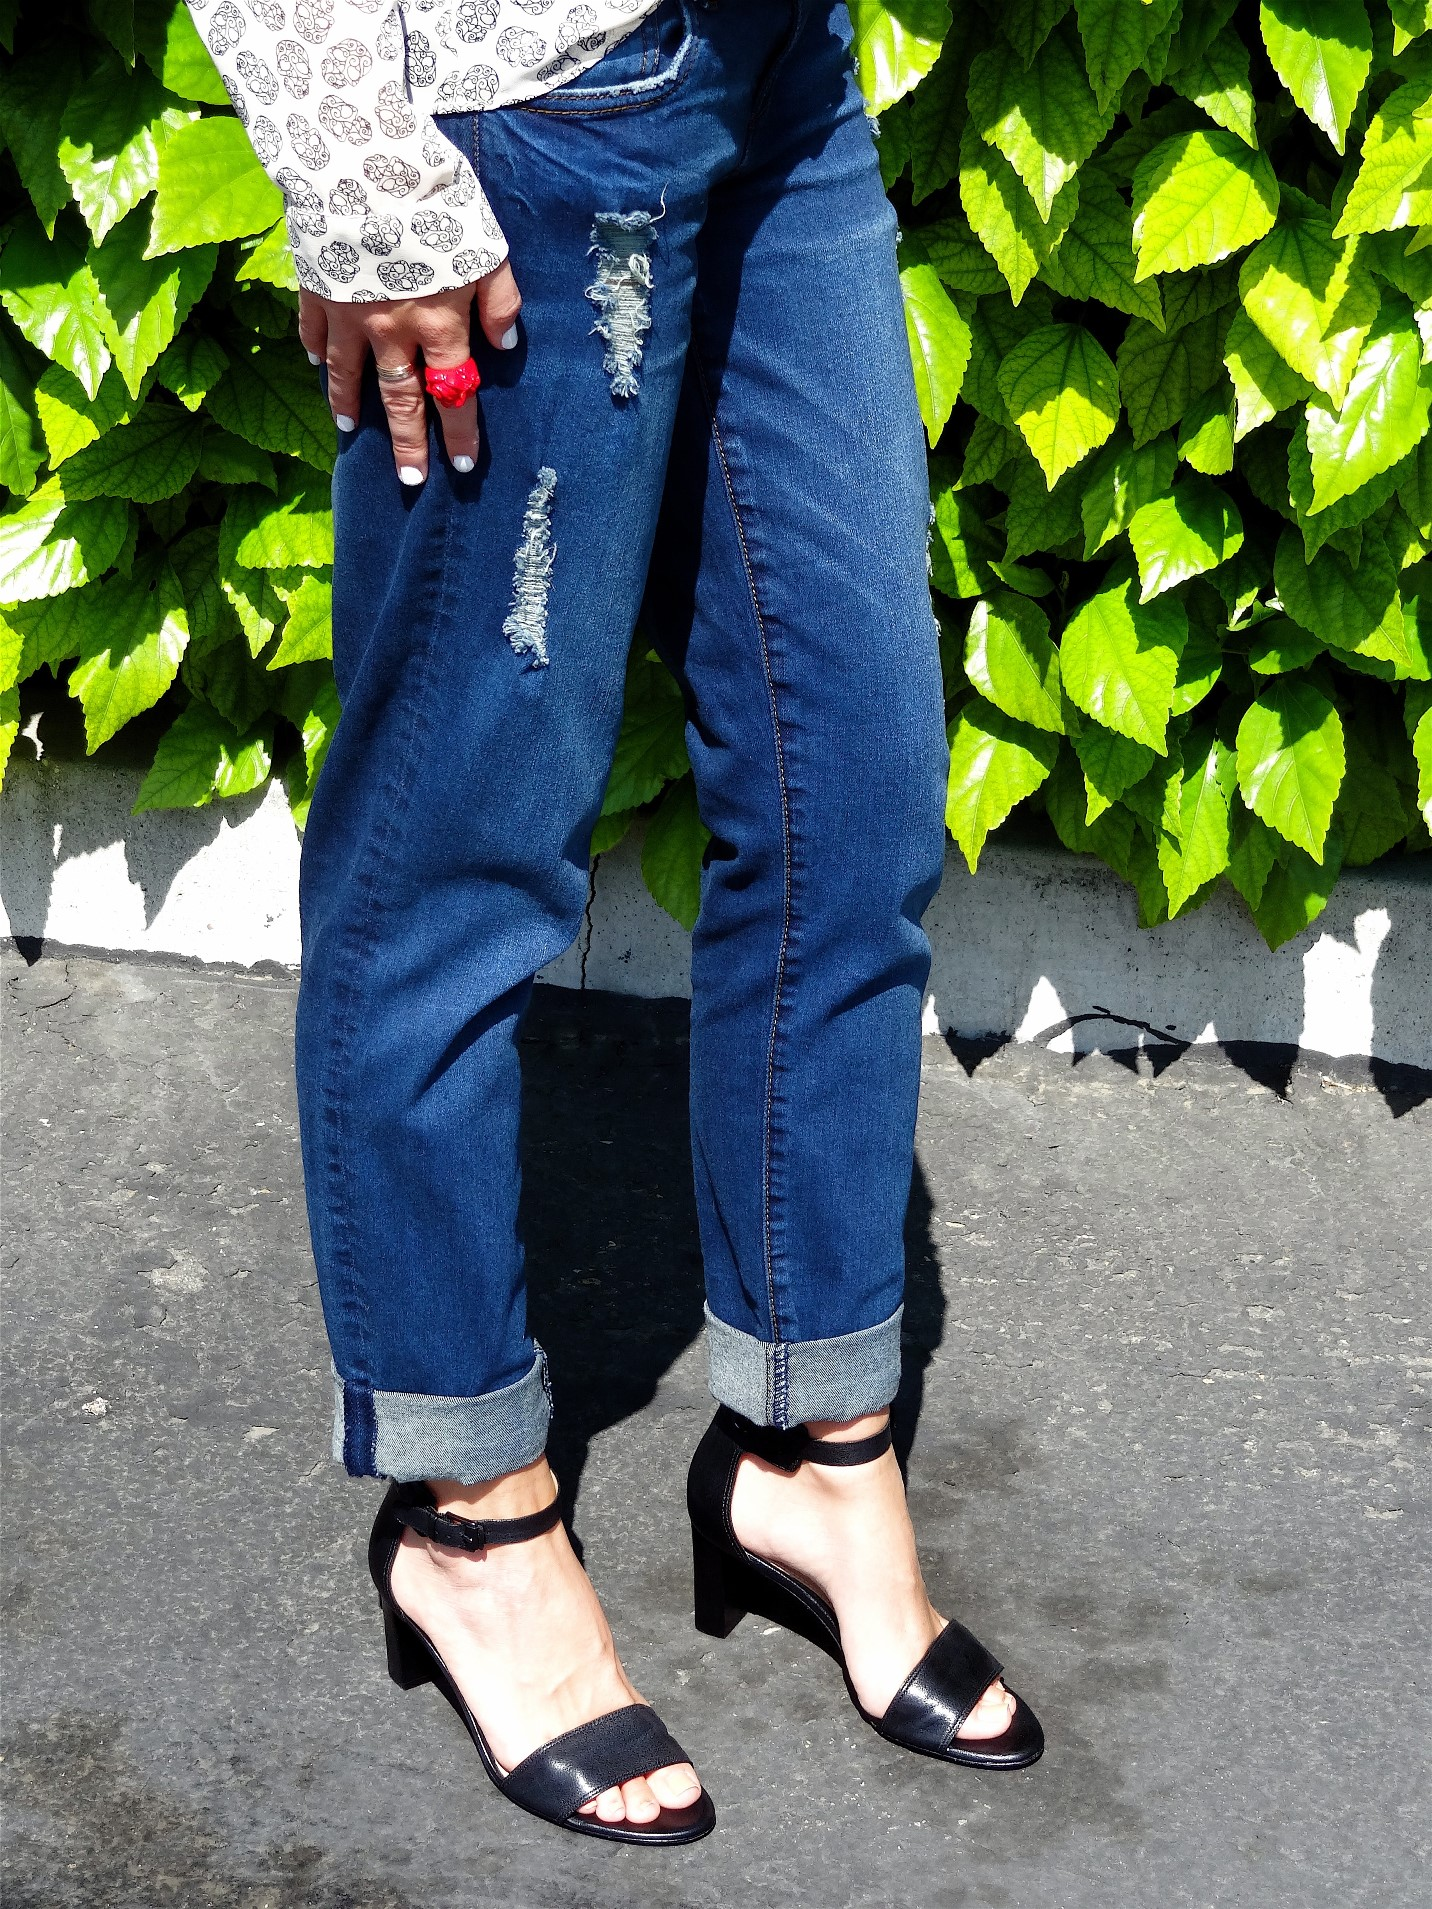 bf-jeans-and-accessories